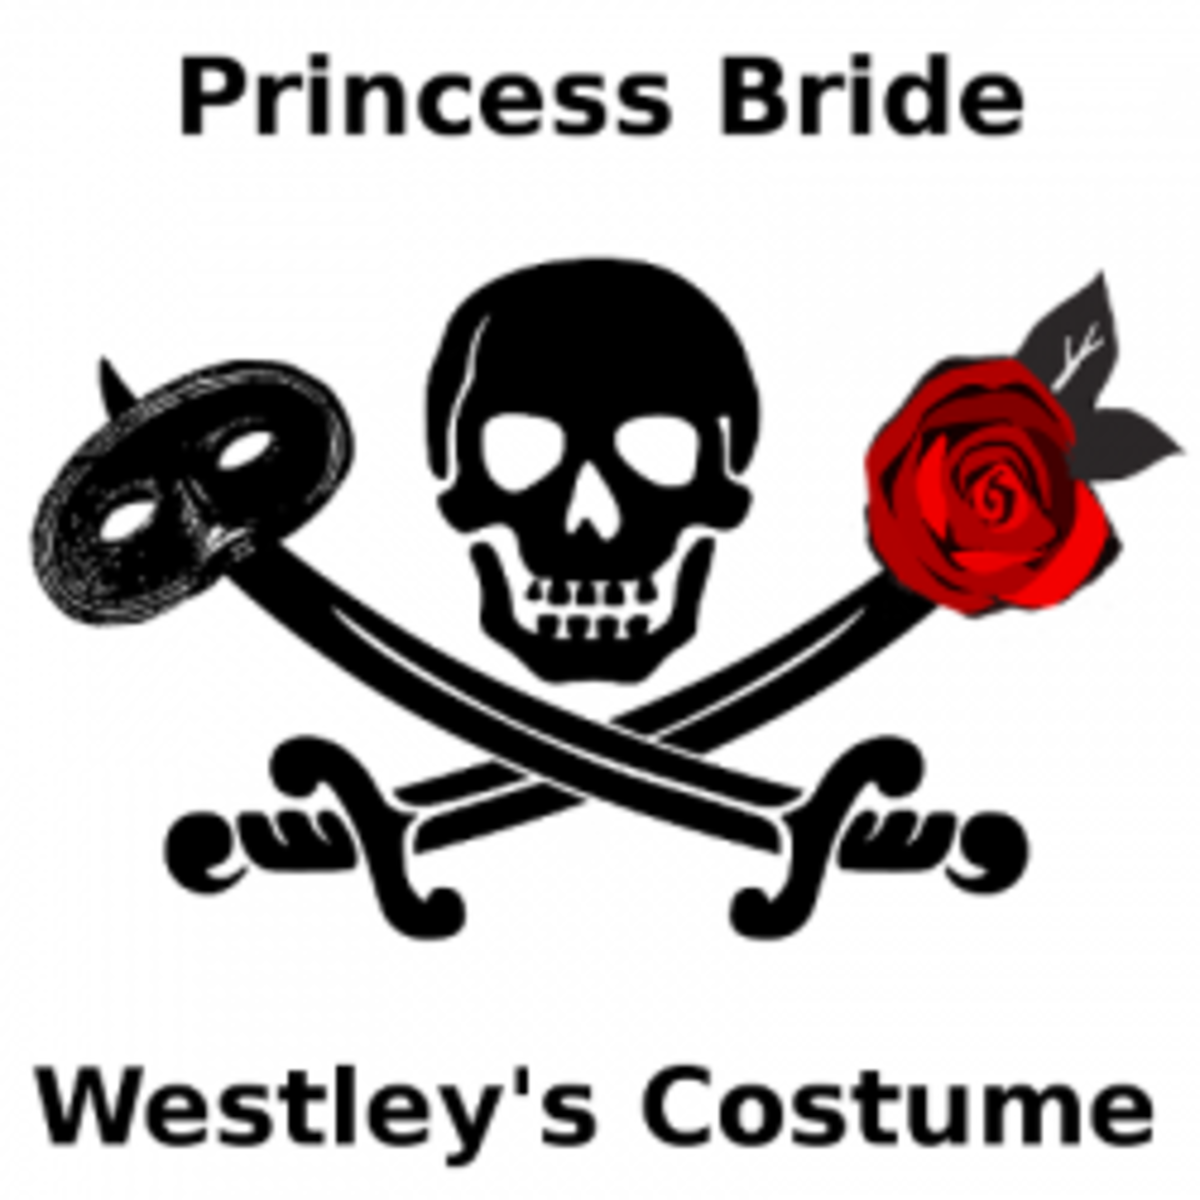 Dress as the Princess Bride Hero Westley for Halloween or Cosplay